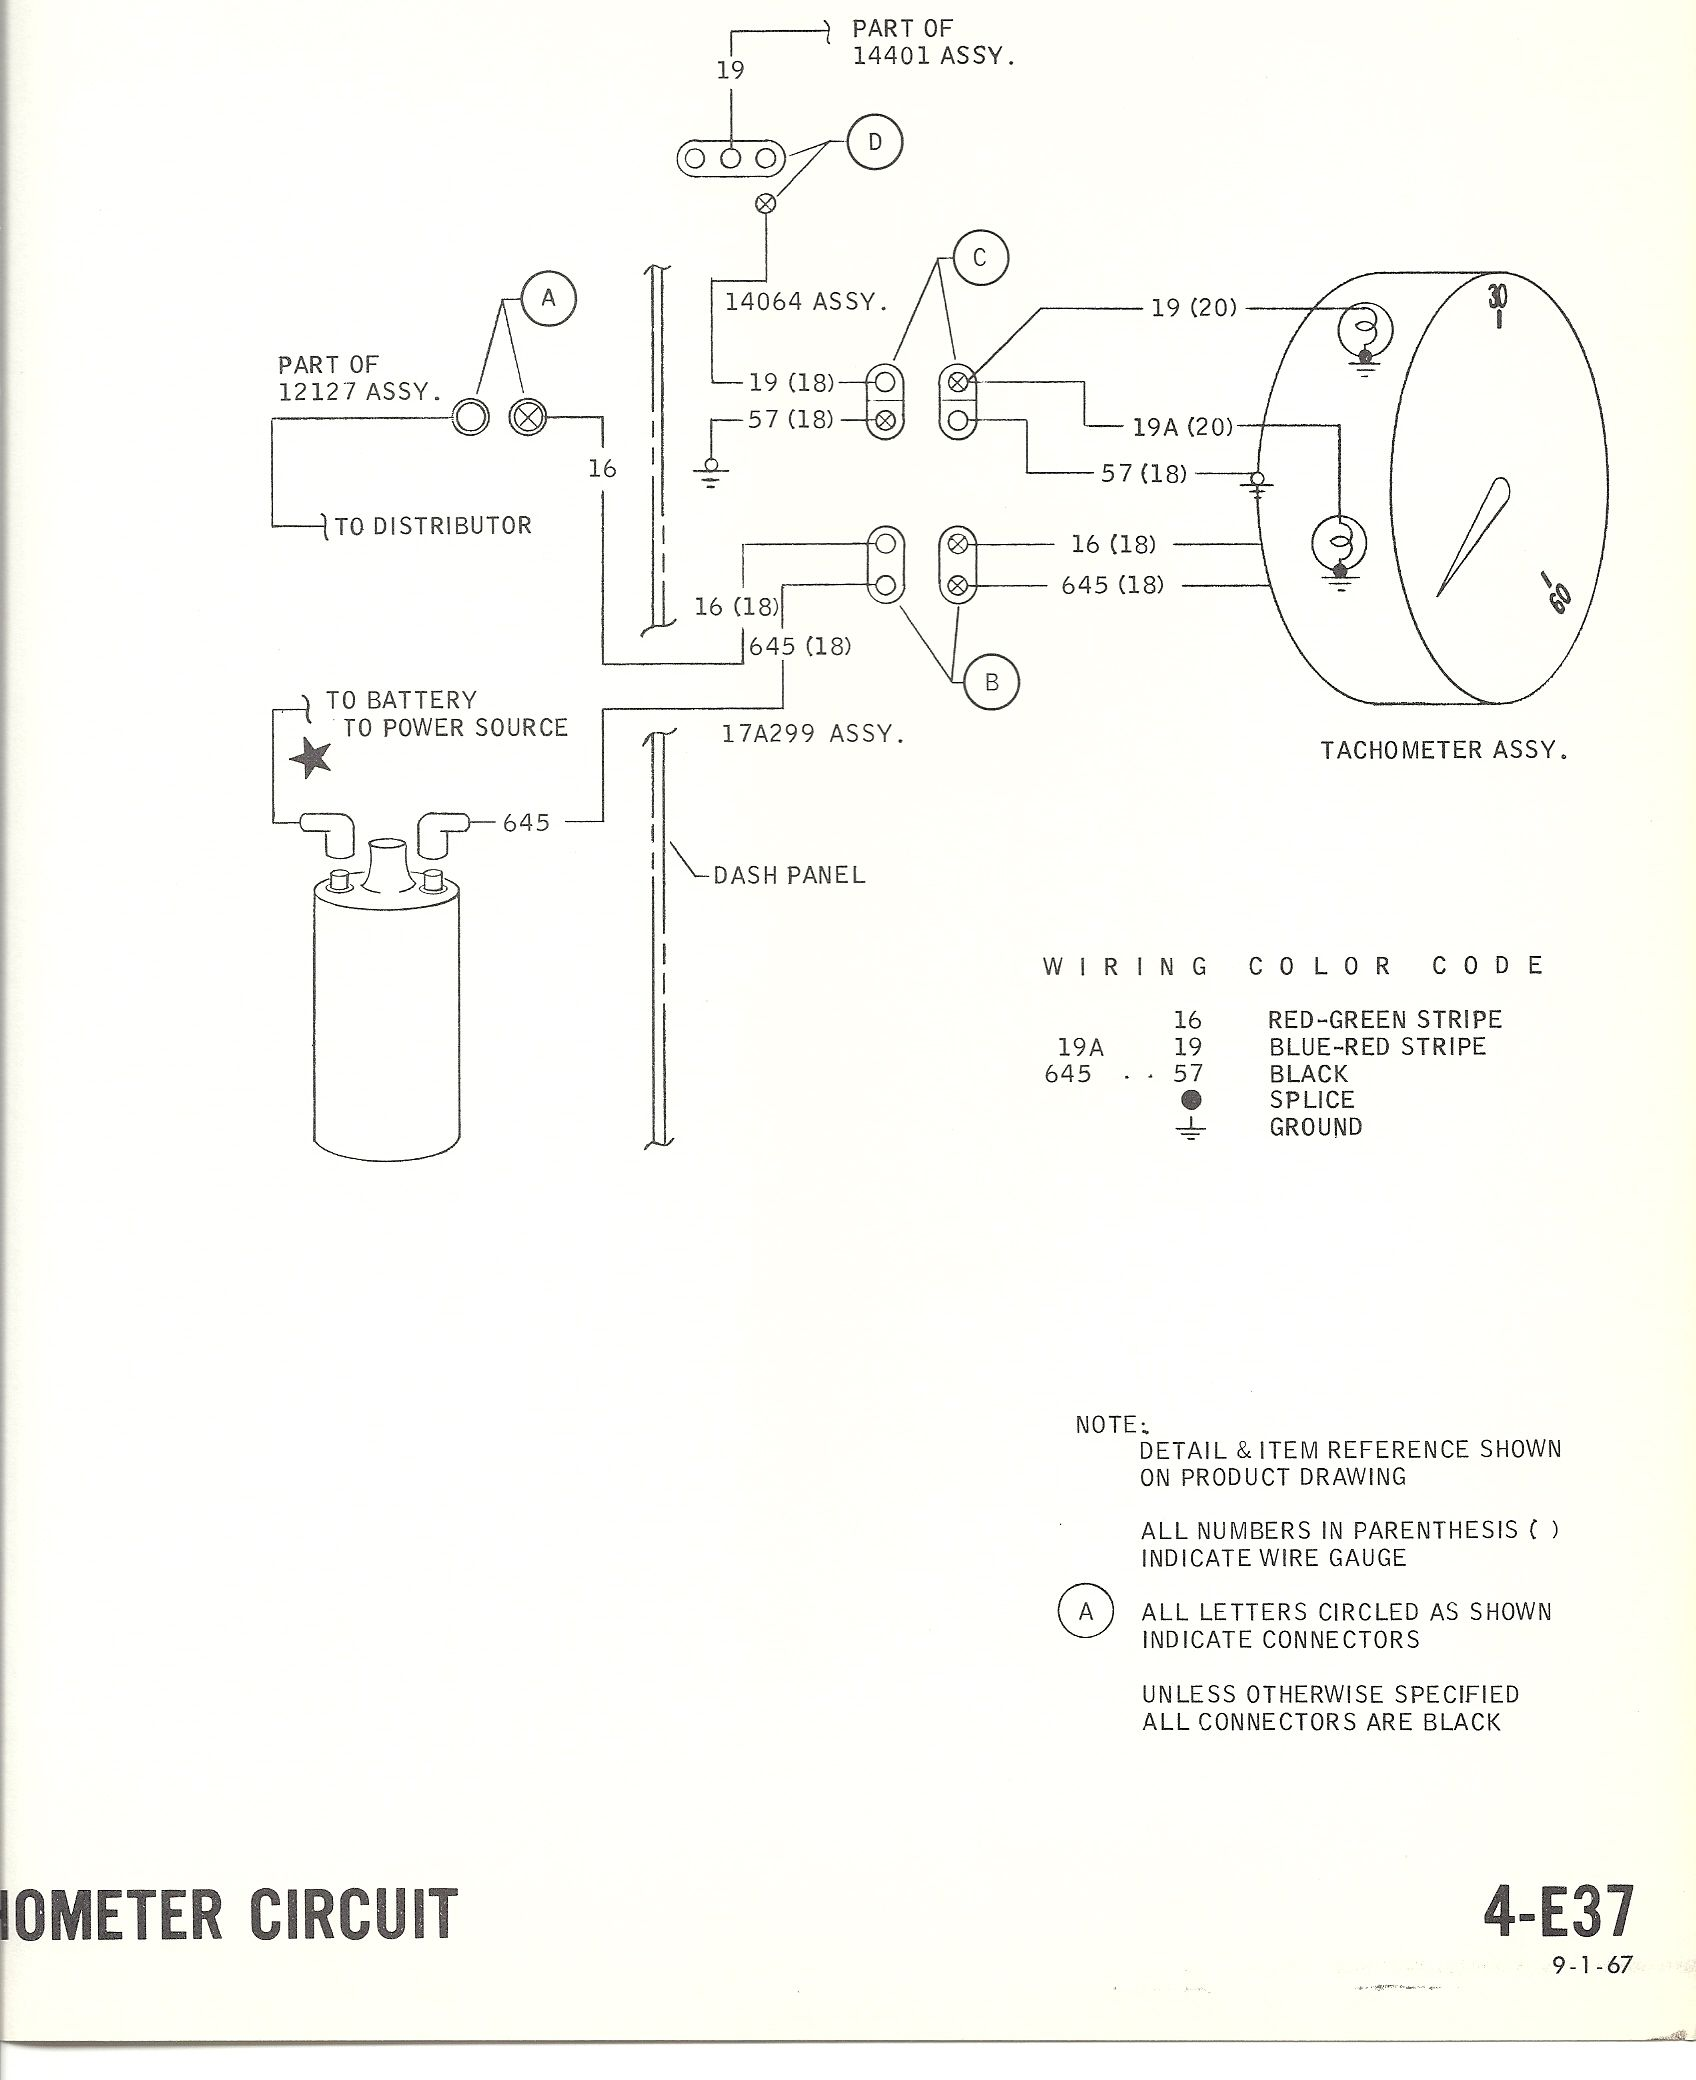 2b2f8e488a4c6a6b870c00f5af30de6c 1967 mustang wiring to tachometer 1968 mustang wiring 1968 mustang ignition switch wiring diagram at gsmx.co